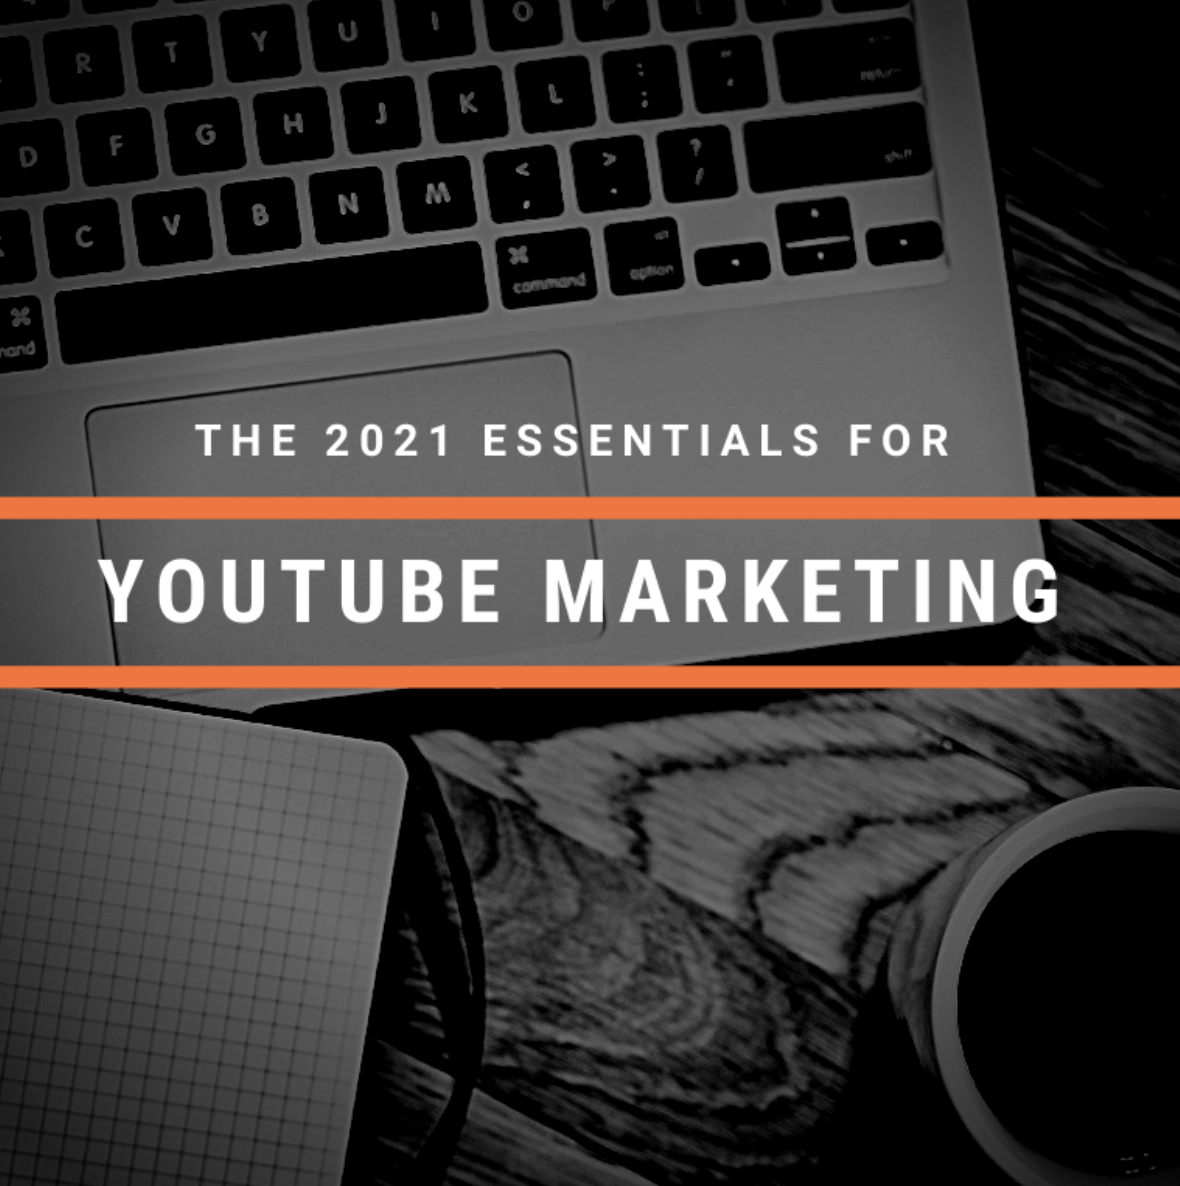 The Essentials for YouTube Marketing in 2021